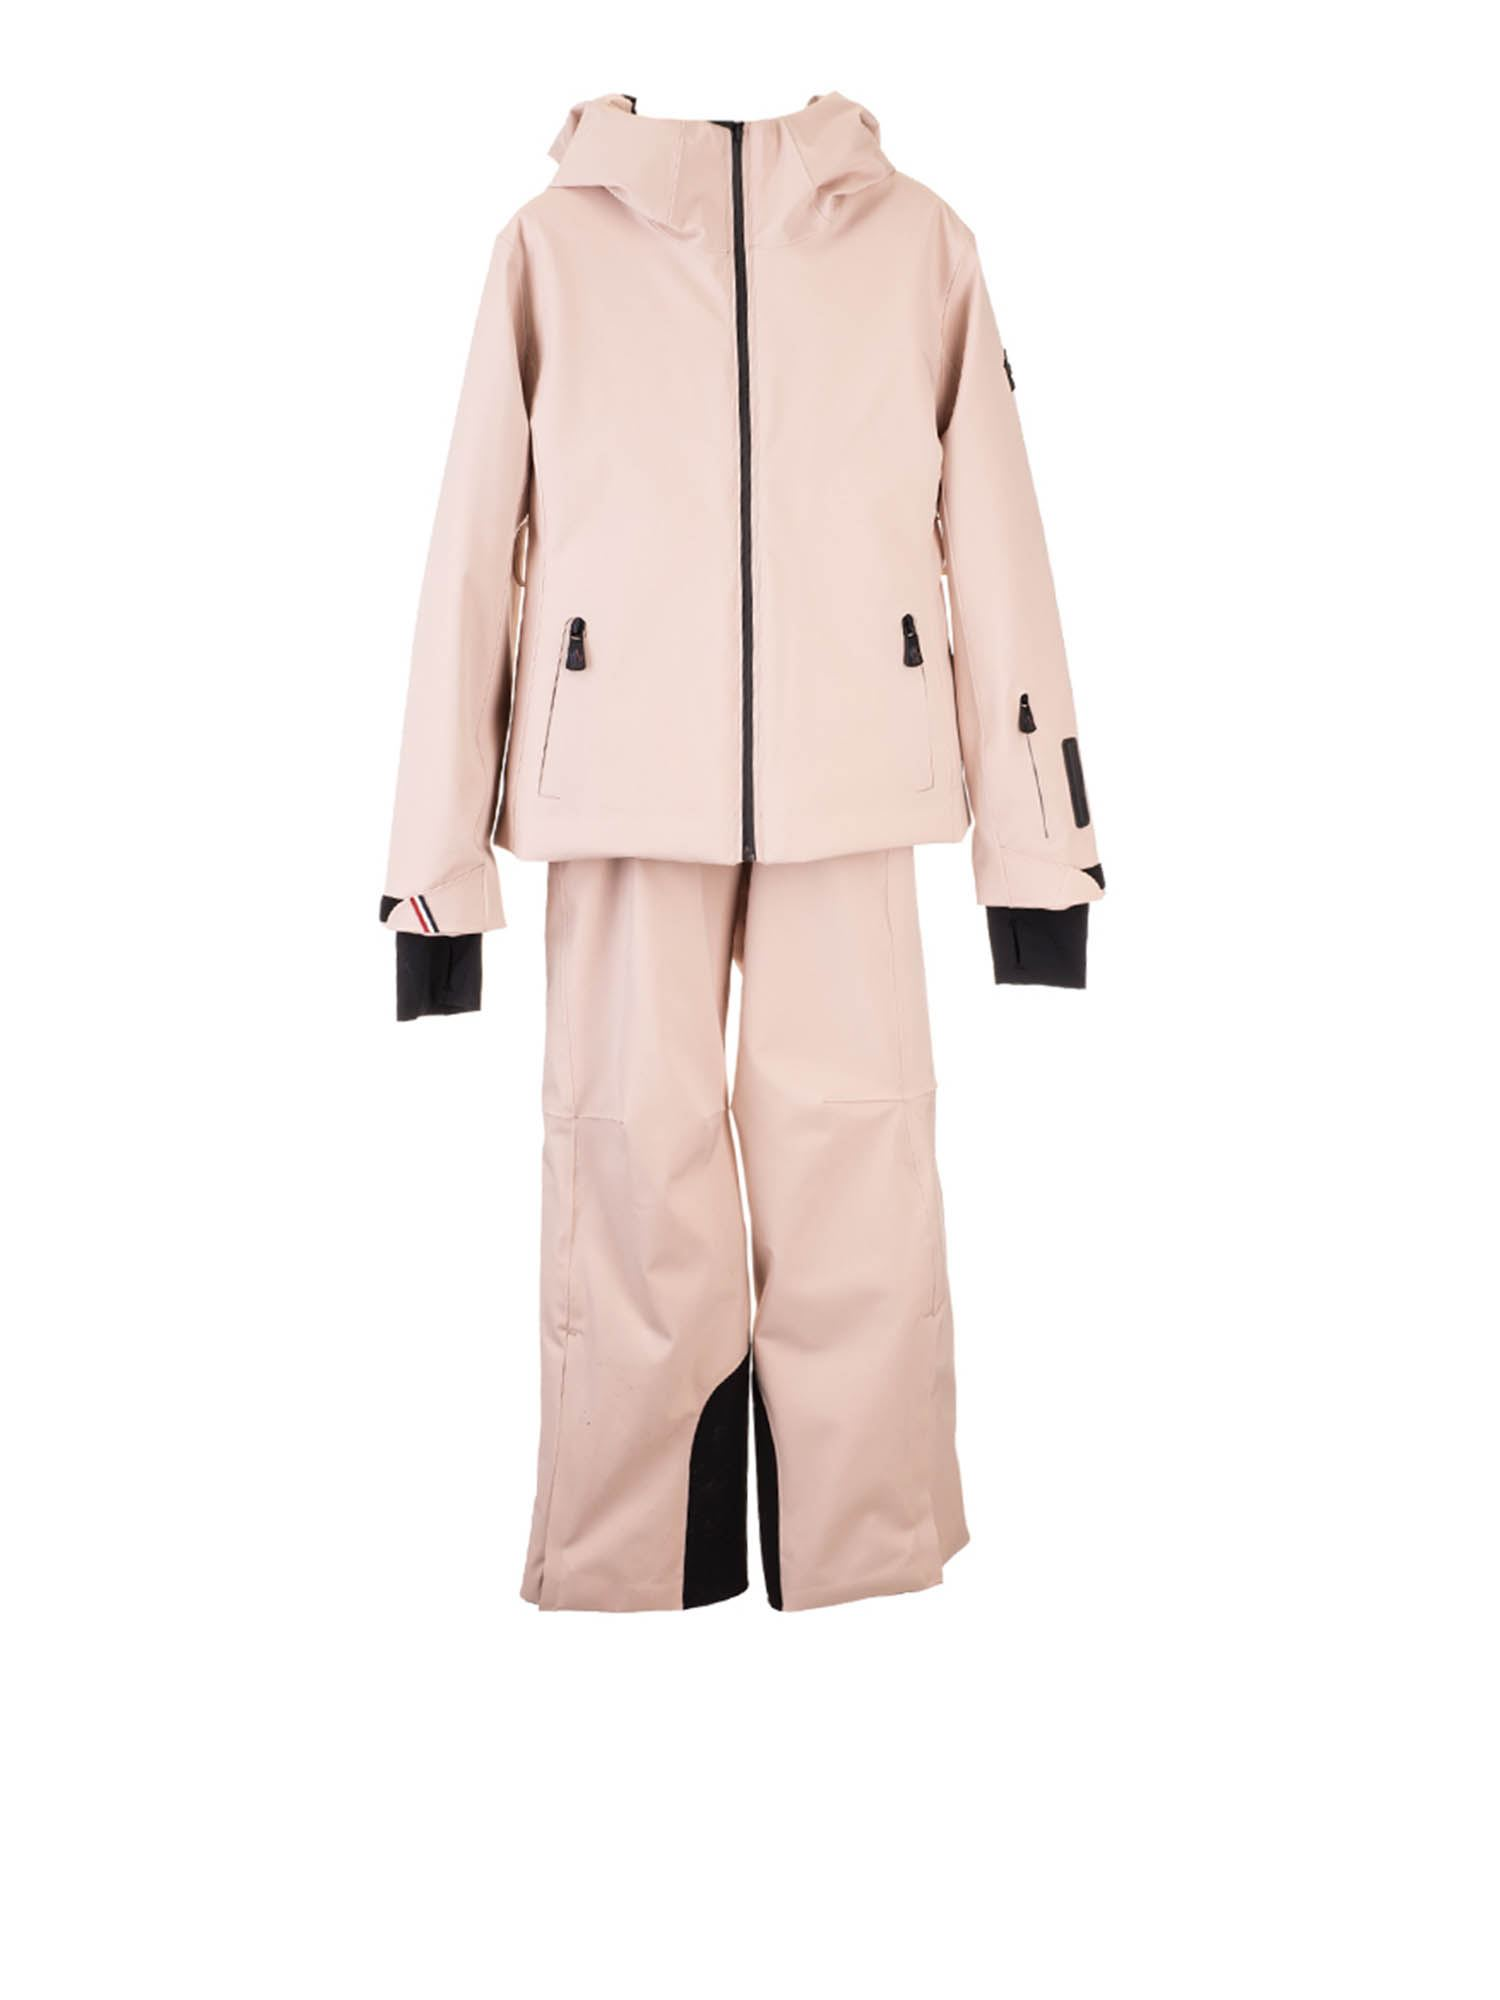 Moncler Jr EMBREE MONCLER GRENOBLE SUIT IN BEIGE